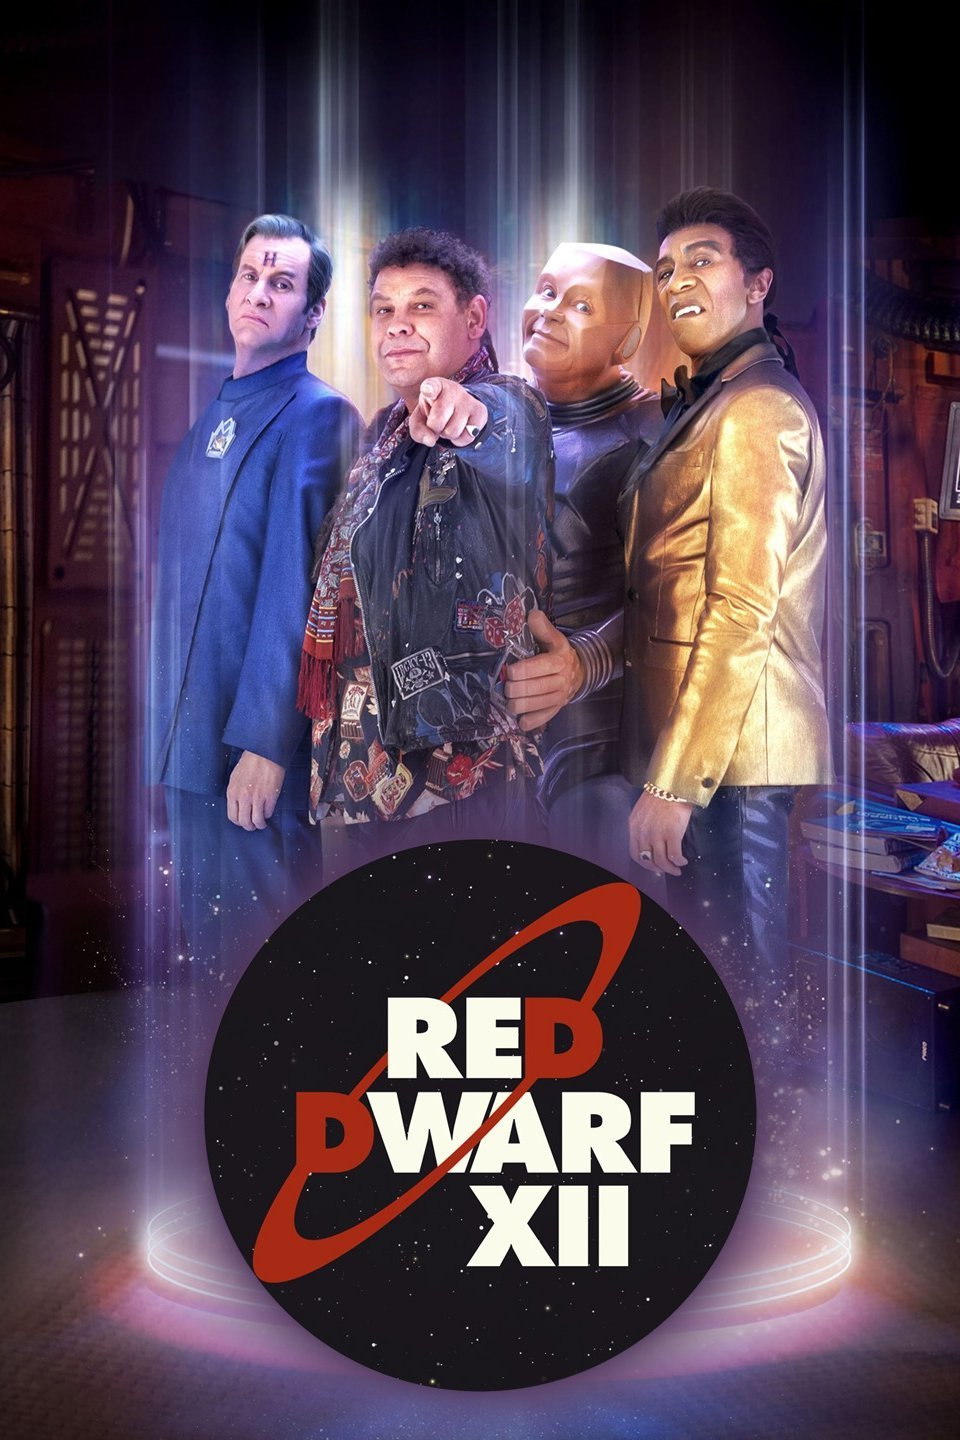 Red Dwarf 2017: Season 12 | Official Home pubfilm.com